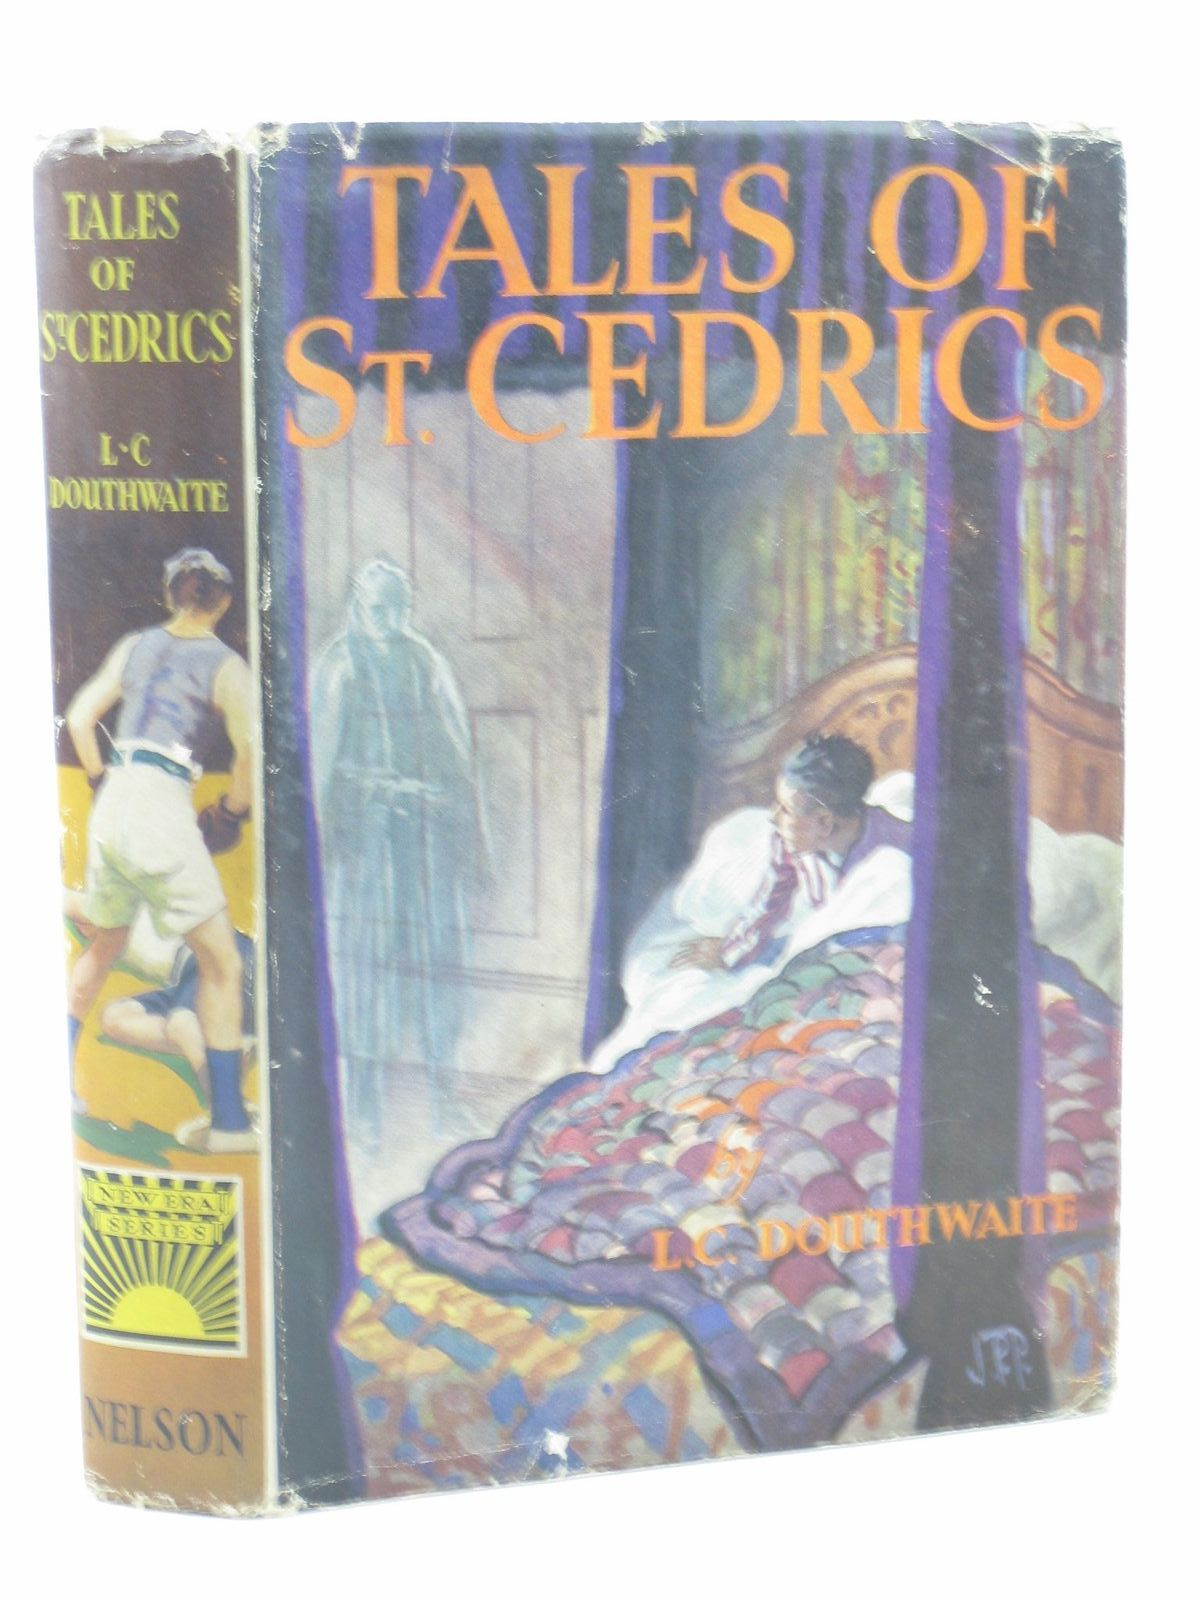 Photo of TALES OF ST. CEDRICS written by Douthwaite, L.C. illustrated by Paterson, J. Phillips published by Thomas Nelson and Sons Ltd. (STOCK CODE: 1311570)  for sale by Stella & Rose's Books